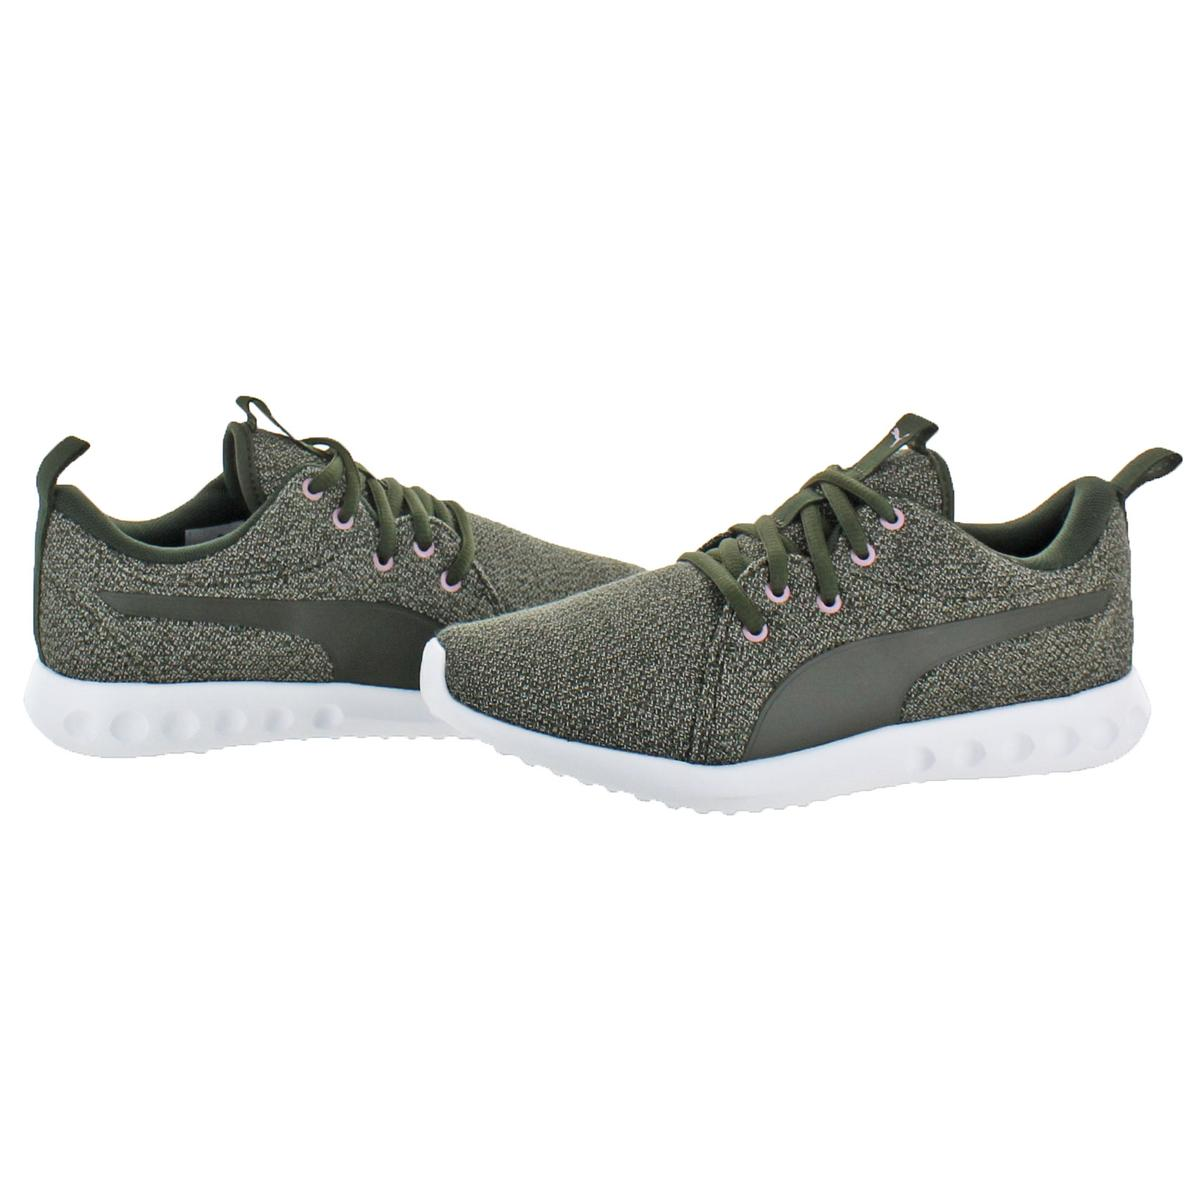 Puma Carson 2 Nature Knit Women s Low-Top Running Trainer Sneaker ... c1aff92cc